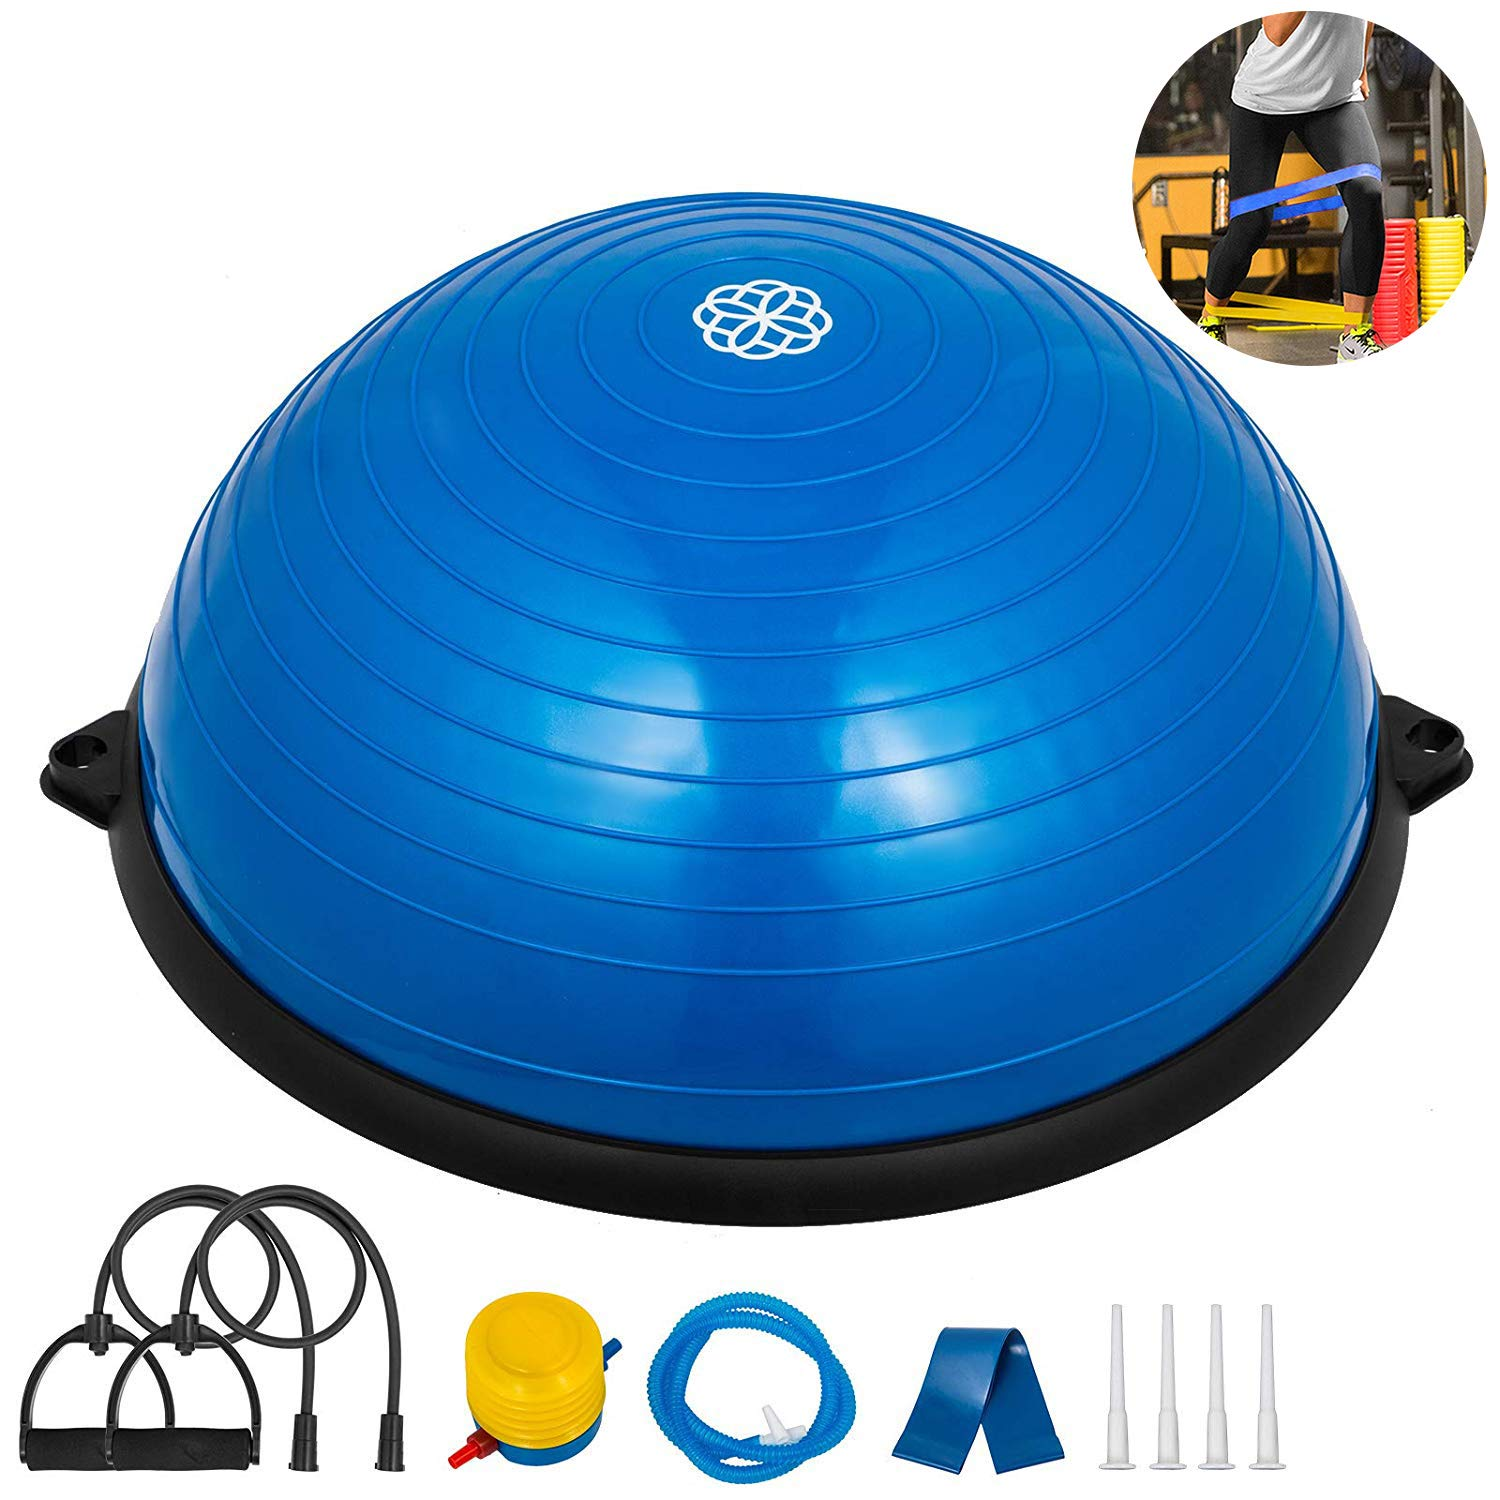 Happybuy 23 inches Yoga Half Ball Dome Balance Trainer Fitness Strength Exercise Workout with Pump and Resistance Band (Blue) by Happibuy